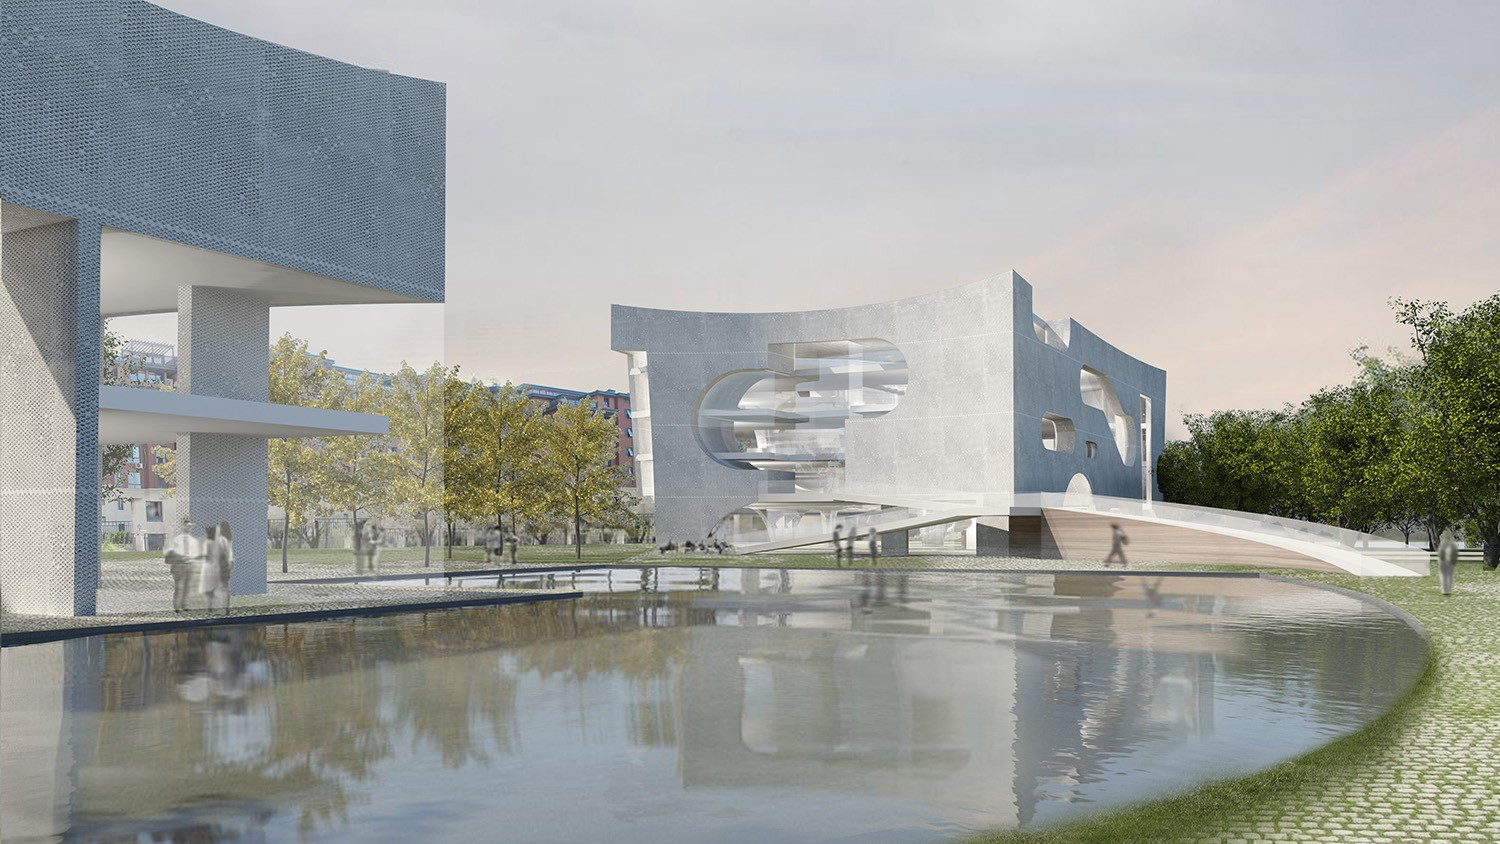 https://s3.us-east-2.amazonaws.com/steven-holl/uploads/projects/project-images/StevenHollArchitects_COFCO_CCEast Facade_WH.jpg